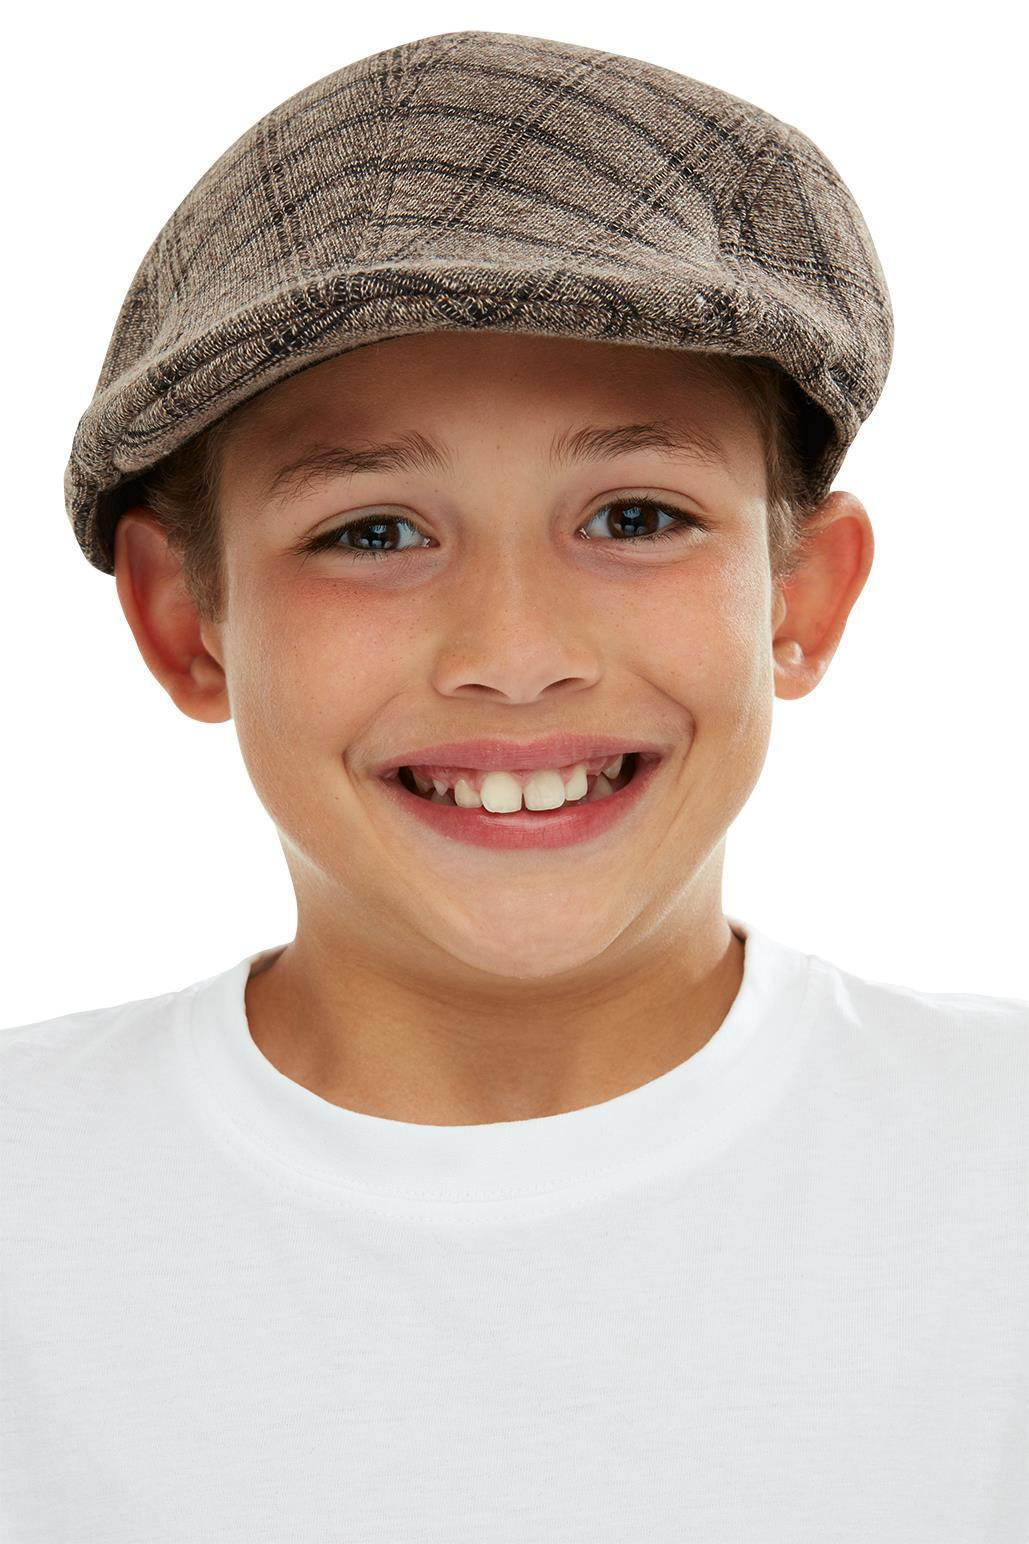 Kids Flat Cap Brown & Black